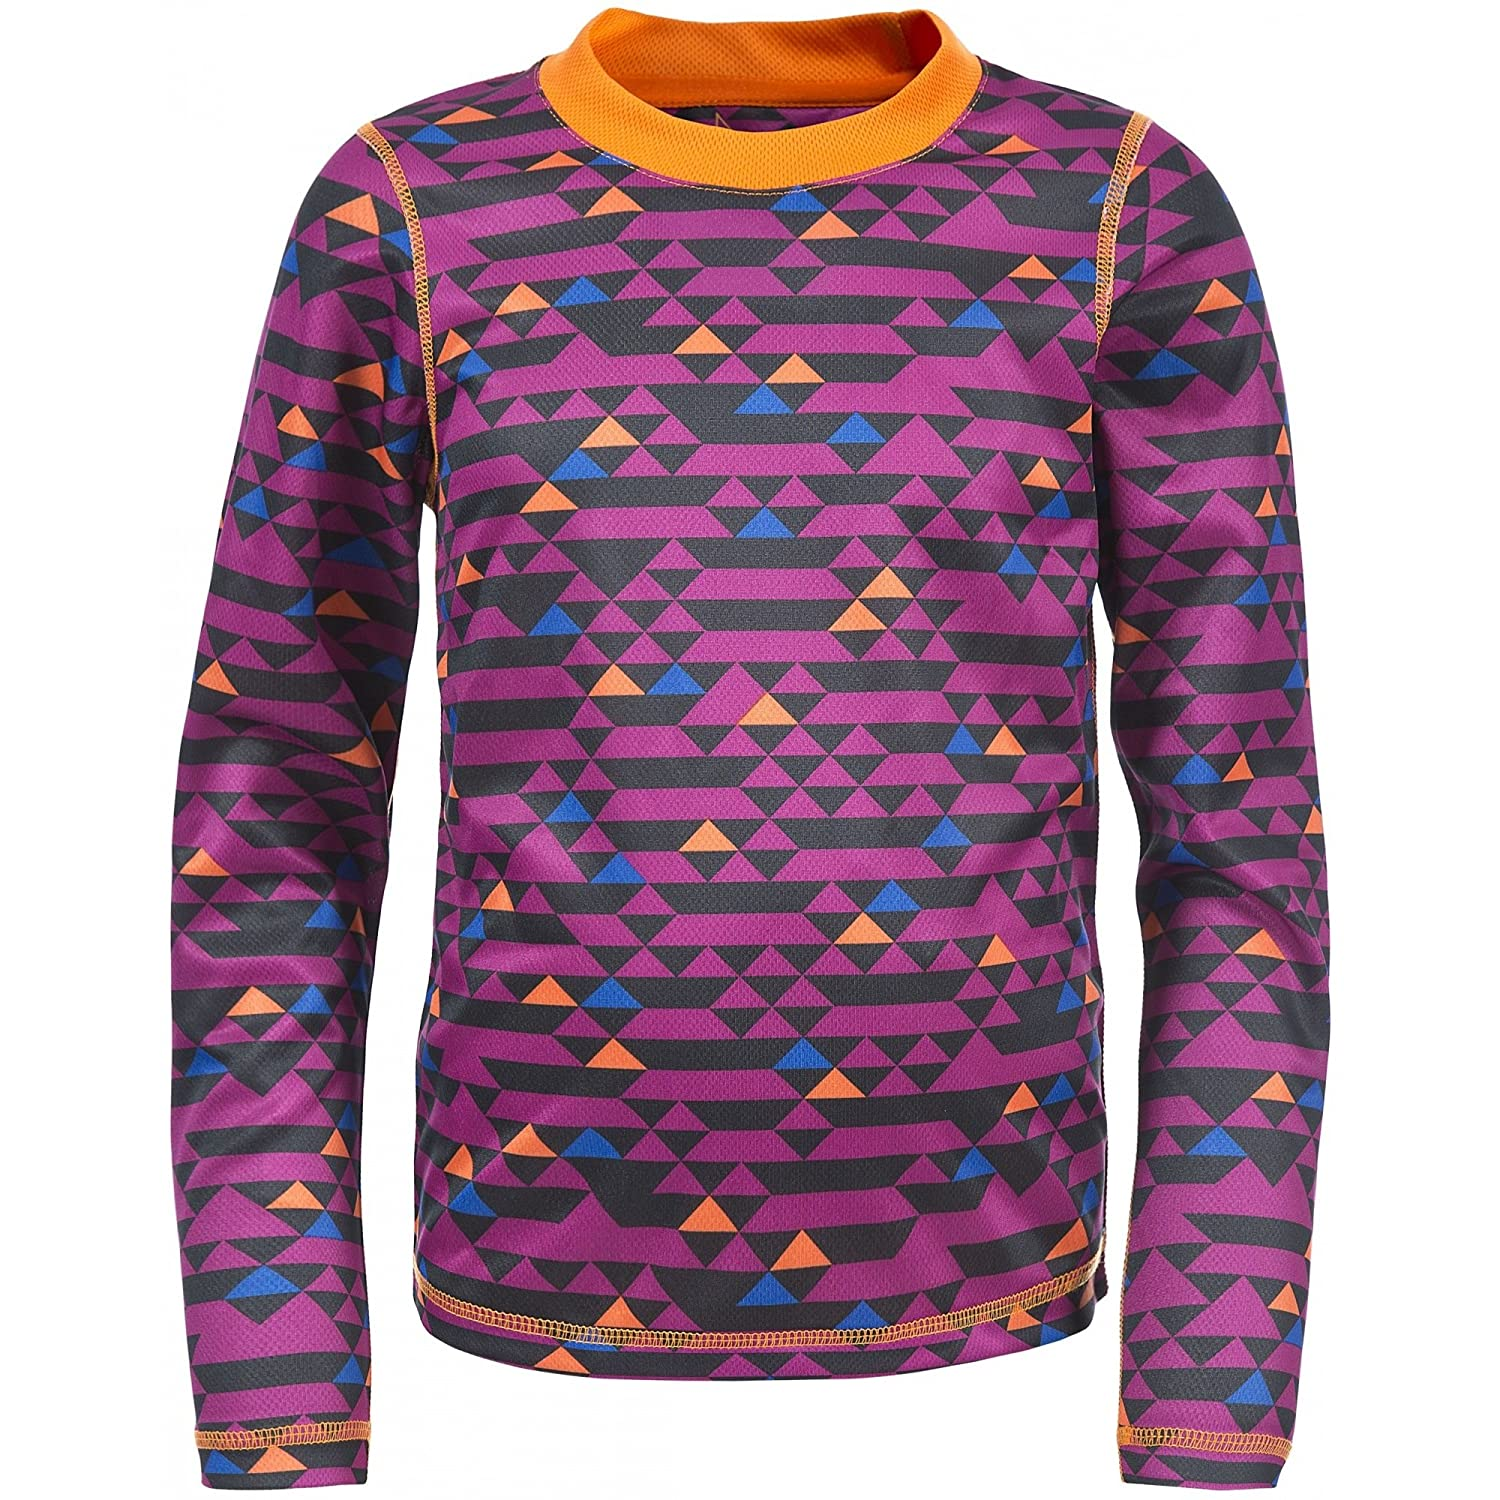 Trespass Childrens/Kids Doozie Baselayer Long Sleeve Top